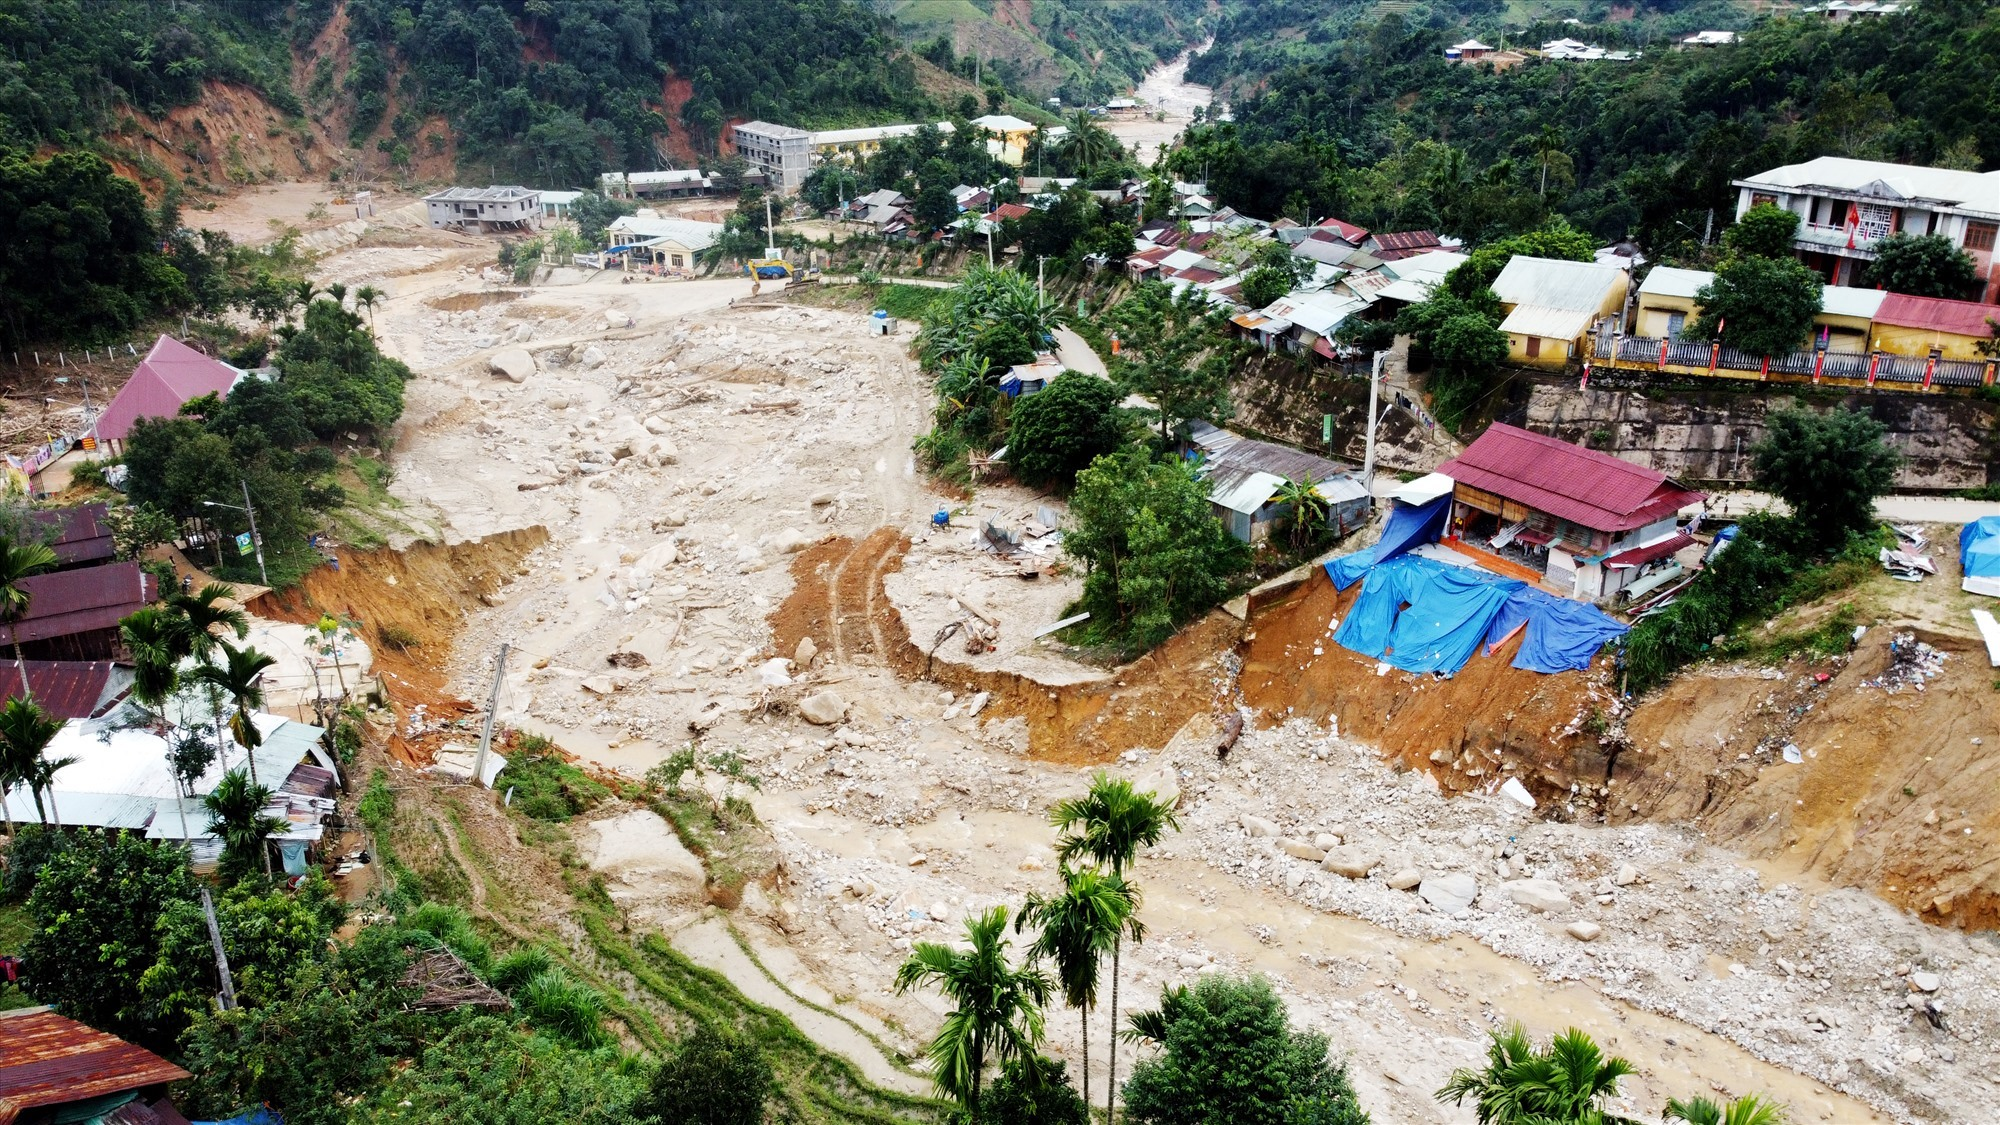 Flood in a mountainous area of Quang Nam